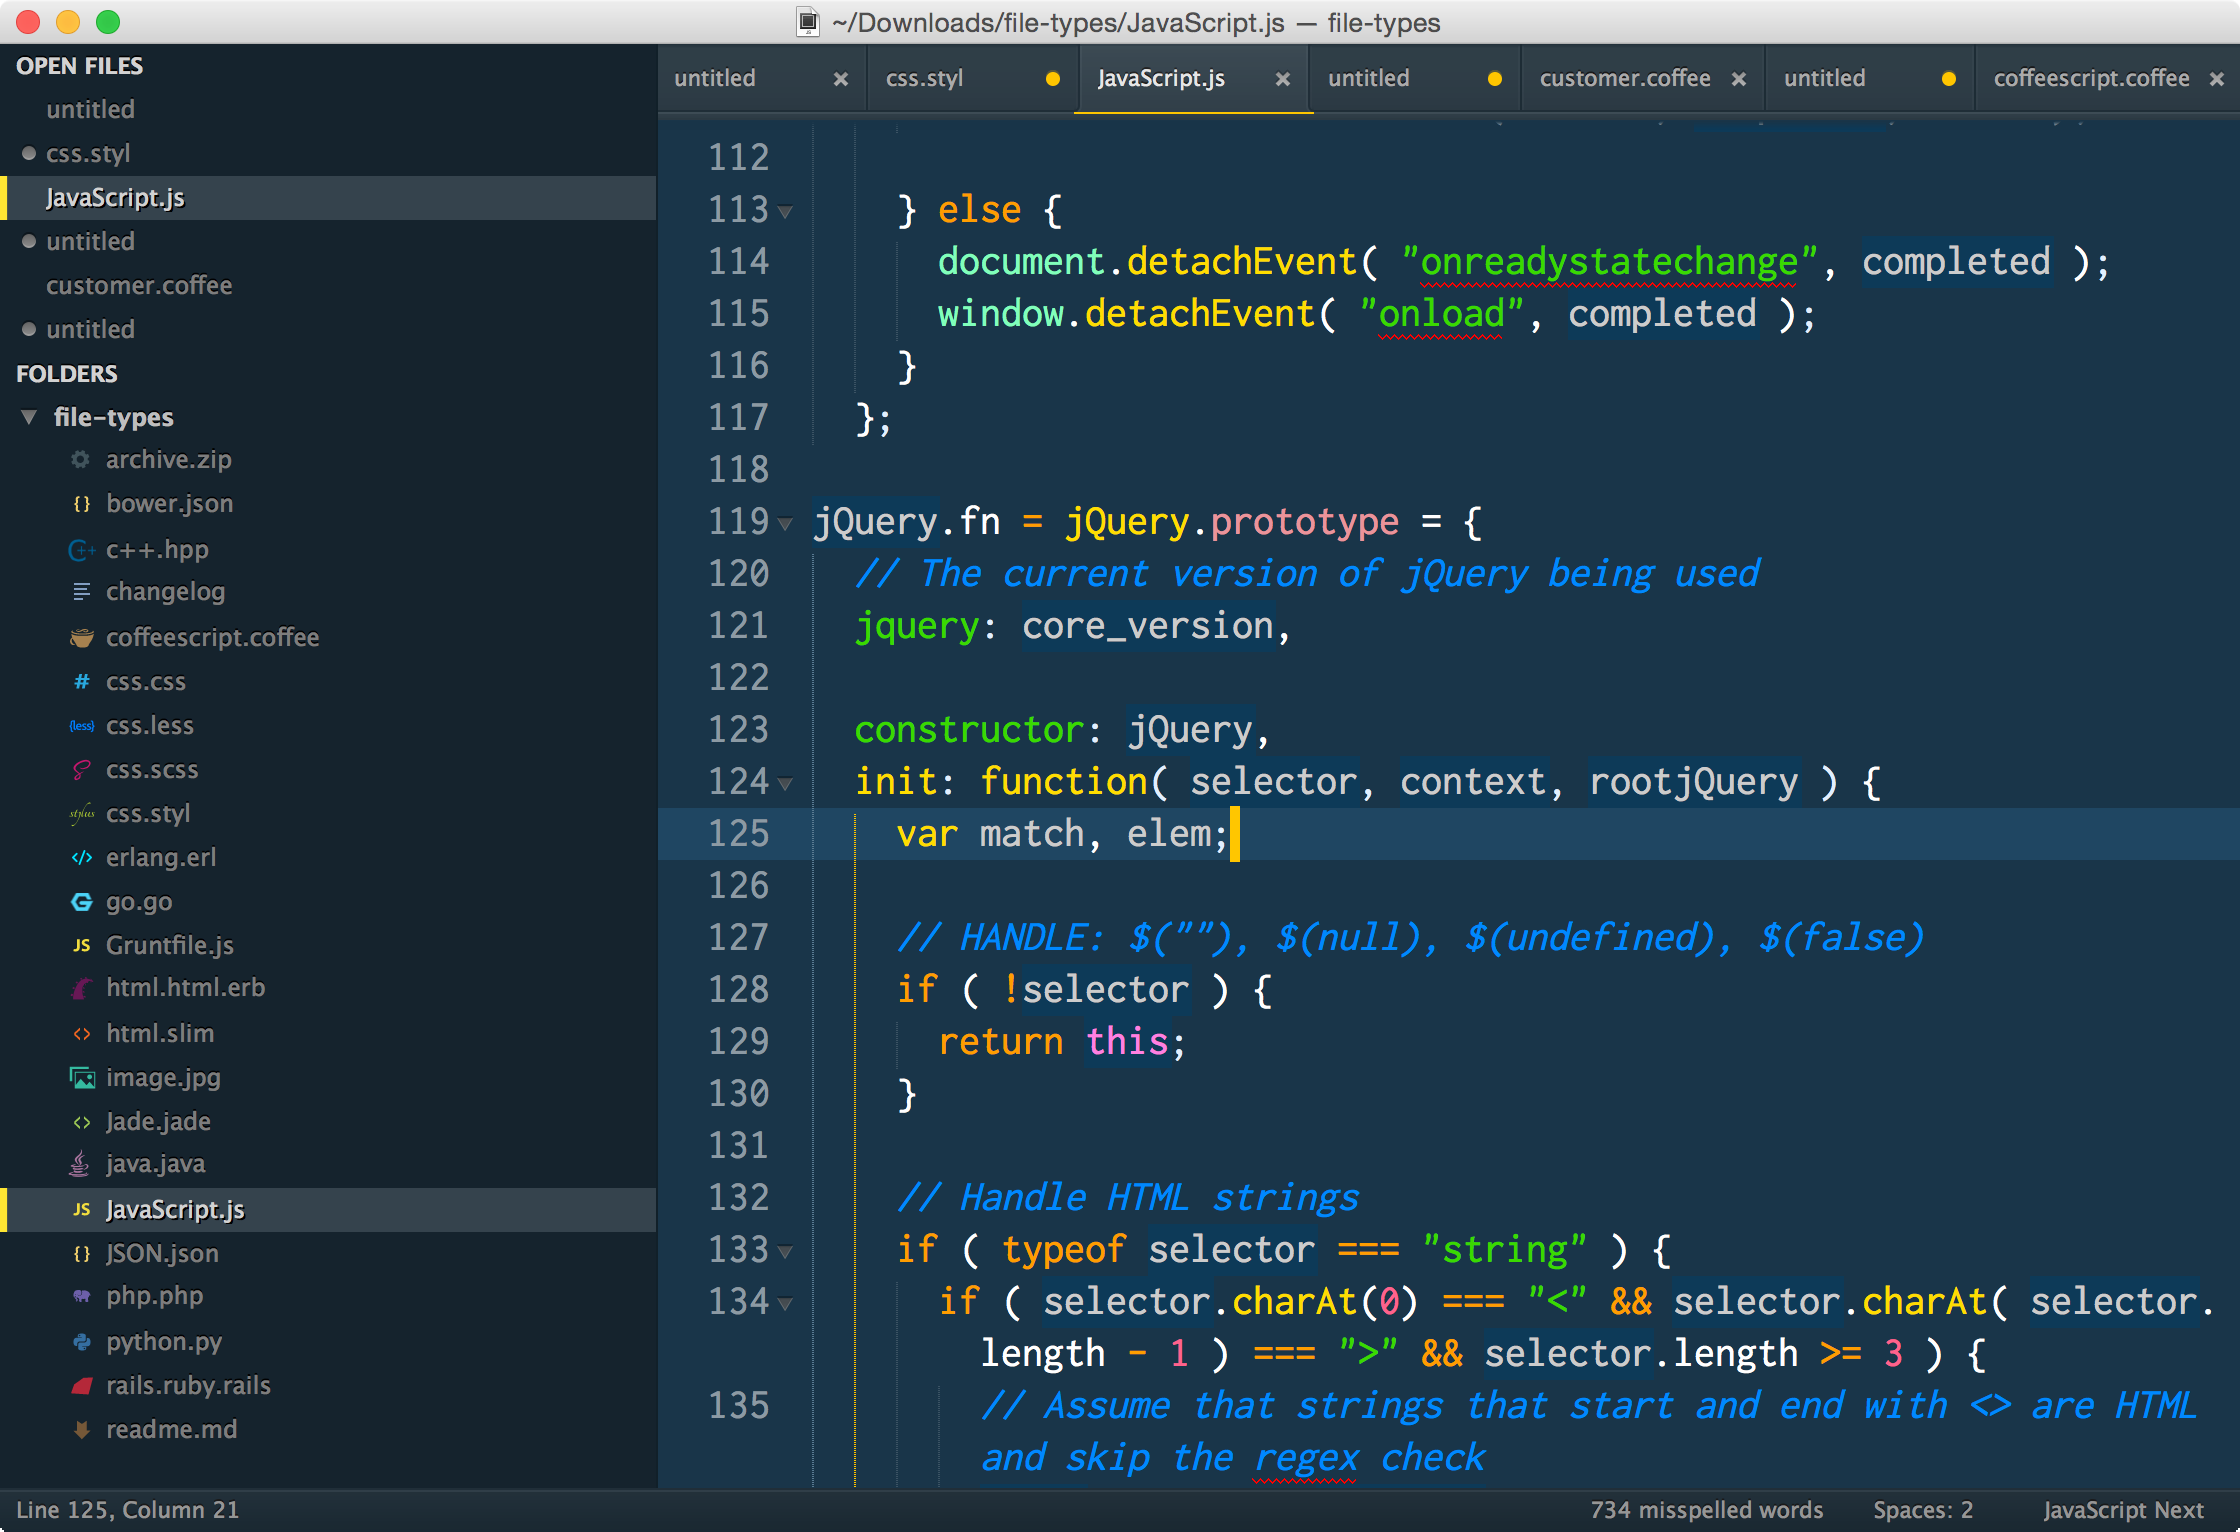 cobalt2 theme for sublime text3